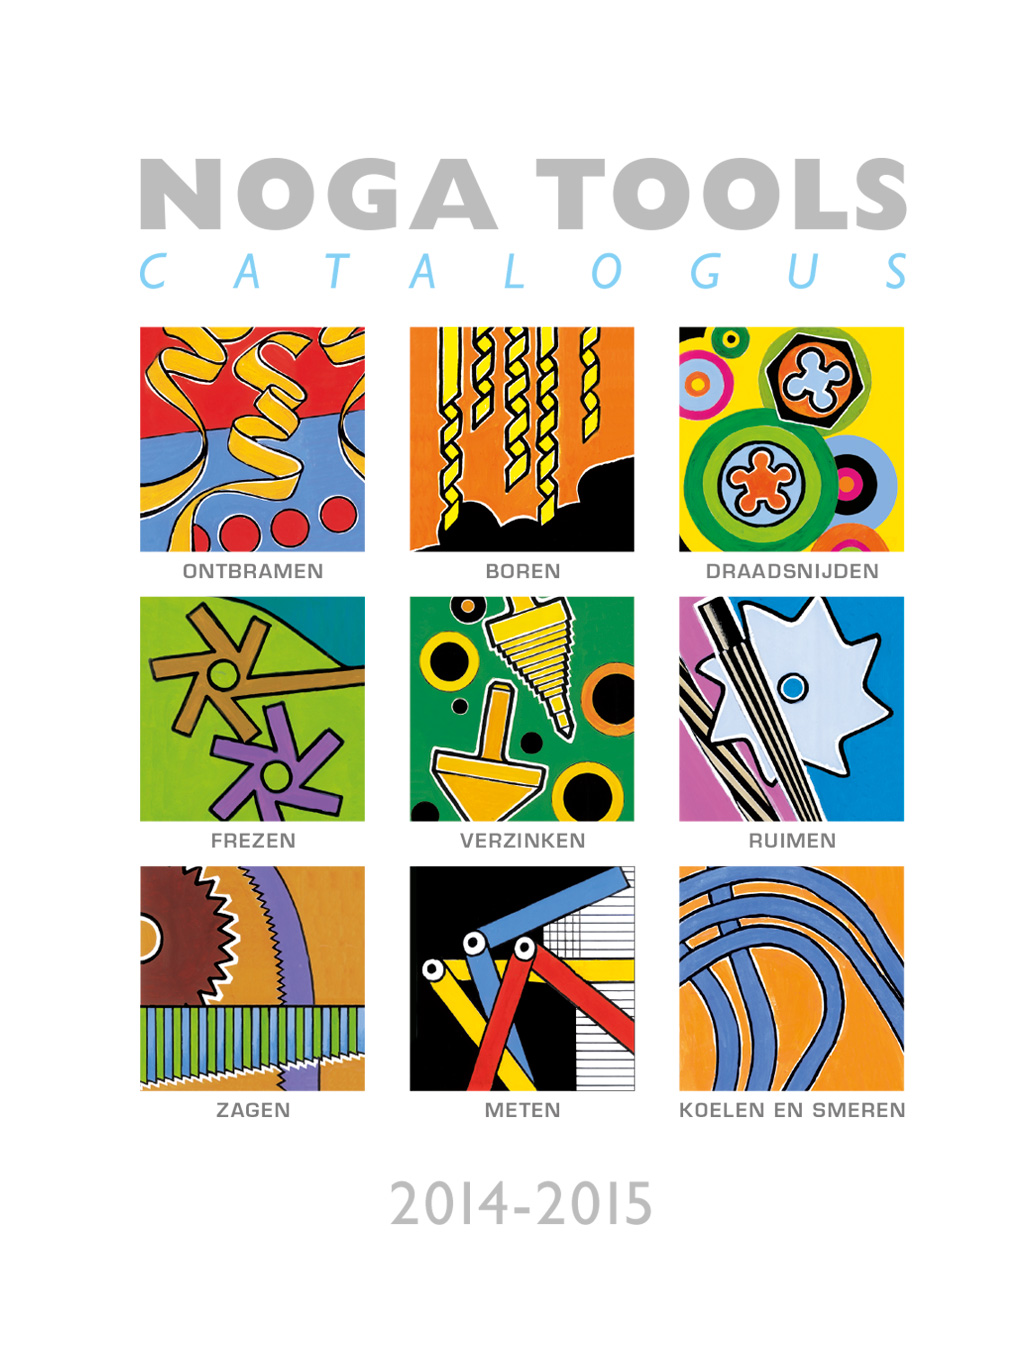 Noga Tools Catalogus 2014-2015 - Cover